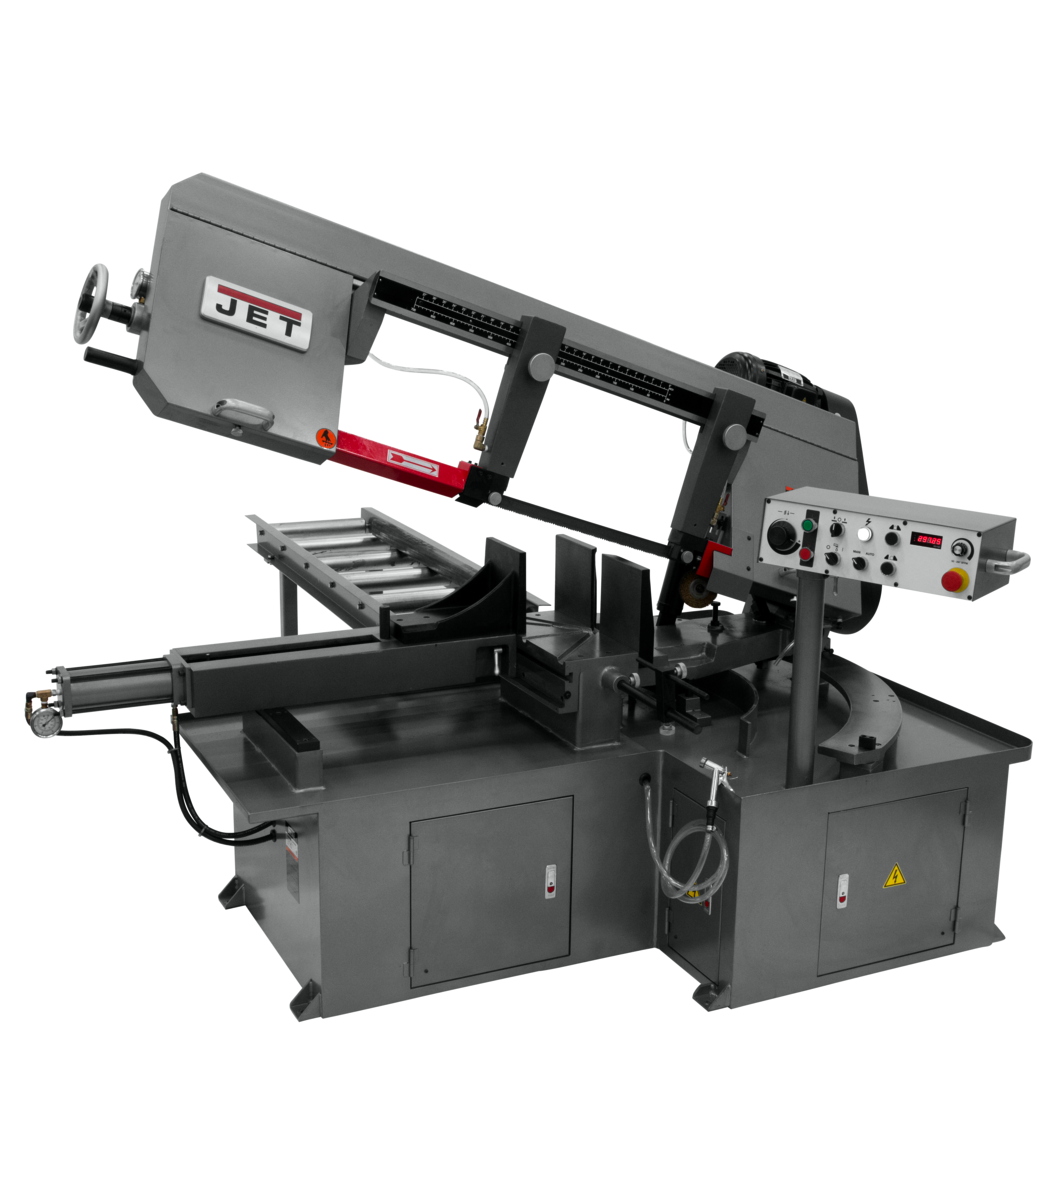 MBS-1323EVS-H, Semi-Automatic Dual Mitering Bandsaw 3HP 230V, 3-Ph